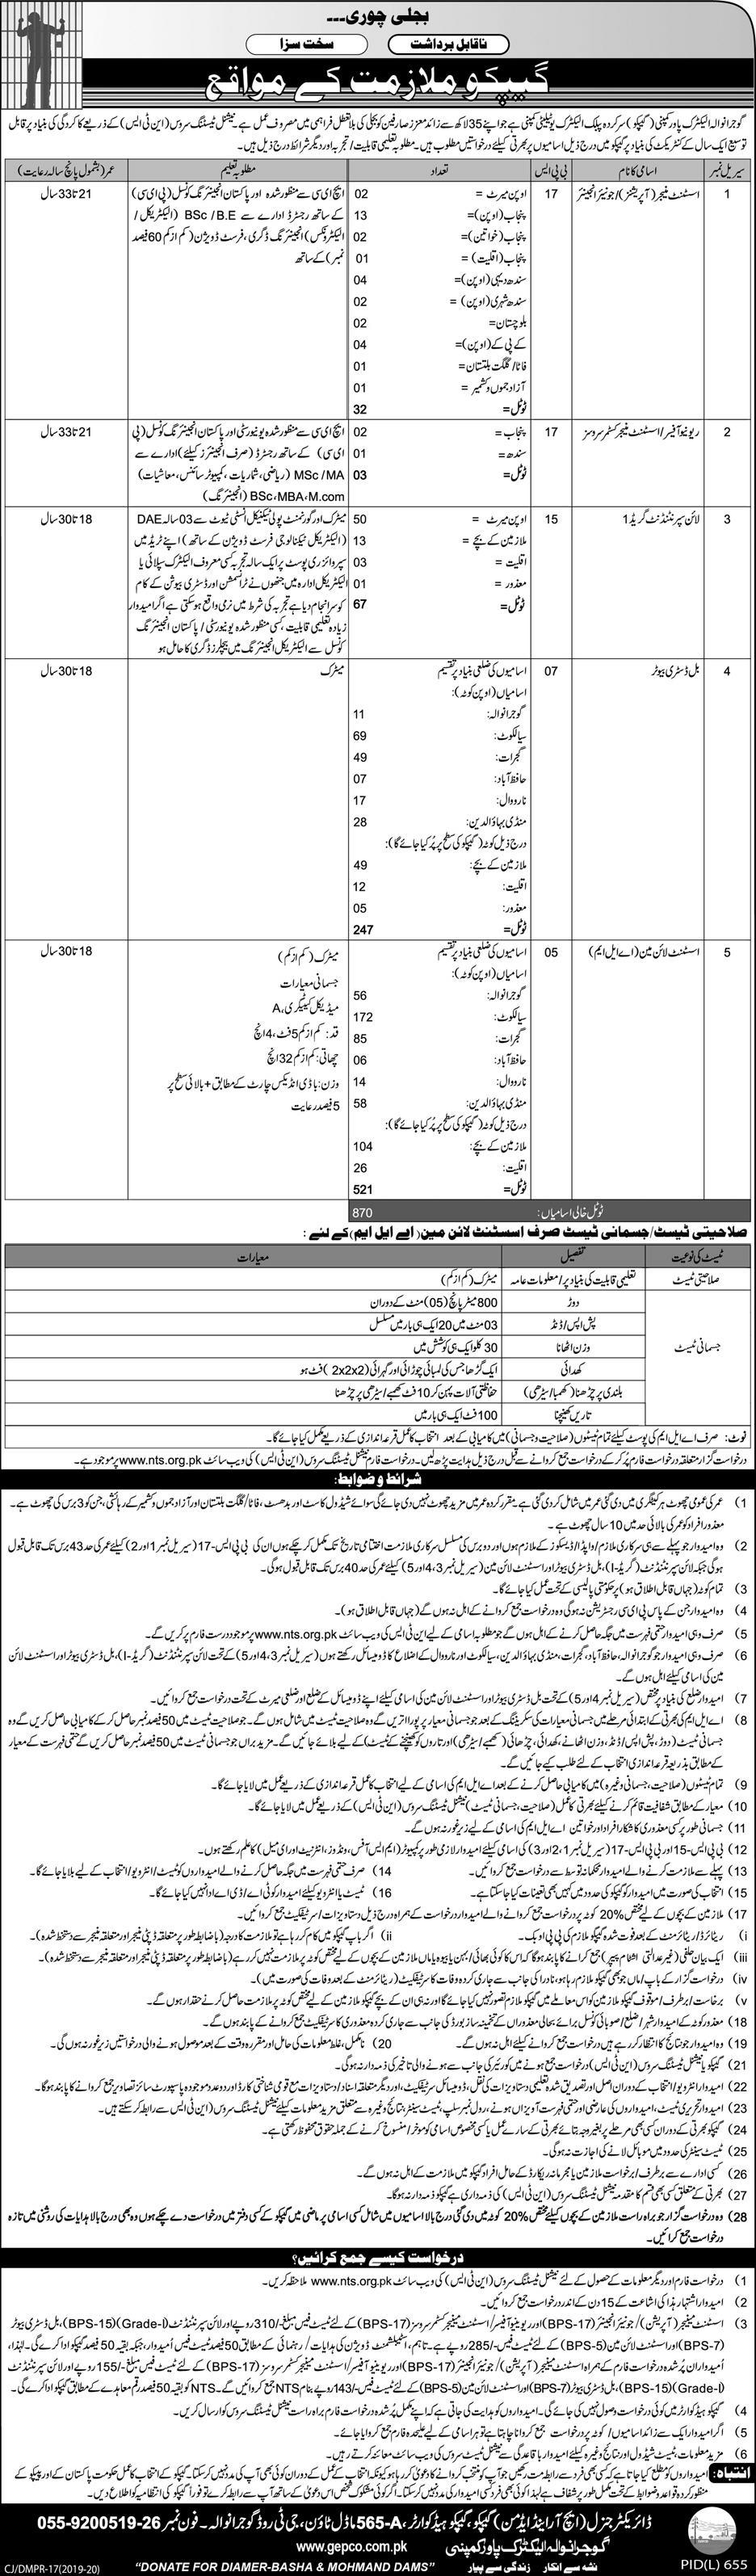 """Punjab Public Service Commission Lahore required applications for vacant posts or jobs in different departments (<em><strong>Specialized Healthcare and Medical Education Department, Planning and Development Board and Social Welfare and Bait ul Maal Department Punjab</strong></em>) from male and female applicants of Punjab on permanent basis. <div class=""""table-users""""> <div class=""""headera""""> <h3 style=""""text-align: center;"""">Job Details</h3> Complete job details of Punjab Public Service Commission Jobs are as fallows. </div> <table cellspacing=""""0""""> <tbody> <tr> <td><b>Organization Name:</b></td> <td>Punjab Public Service Commission</td> </tr> <tr> <td><strong>Job Type:</strong></td> <td>Government/Permanent</td> </tr> <tr> <td><strong>No. of Total Vacancies:</strong></td> <td>More than 55</td> </tr> <tr> <td><strong>Age limits:</strong></td> <td>18 to 30 Years</td> </tr> <tr> <td><strong>Qualification:</strong></td> <td>BSc/MSc/M.Phil/MBBS</td> </tr> <tr> <td><strong>Experience:</strong></td> <td>Should be preferred.</td> </tr> </tbody> </table> </div> <h3 style=""""text-align: center;"""">Application Deadline</h3> <span style=""""font-size: 14px; letter-spacing: -0.025em;""""><span style=""""letter-spacing: -0.025em;"""">Last date of submission of Application is <strong>23 </strong></span><strong>September 2019</strong><span style=""""letter-spacing: -0.025em;""""> for PPSC Jobs</span><span style=""""letter-spacing: -0.025em;"""">.</span></span> <div class=""""table-users""""> <div class=""""headera""""> <h3 style=""""text-align: center;"""">Application Process</h3> Willing candidates/applicants who meet the eligibility or qualification criteria can apply for Punjab Public Service Commission Lahore Jobs. The complete application process is as below or for more details view the job advertisement. <ol> <li style=""""list-style-type: none;""""> <ol> <li>For Online Application submission visit PPSC official website. <strong>Or visit this link:</strong><a>http://www.ppsc.gop.pk/(S(jsmaxvjhylhqn1rrsz1da0j5))/jobs.aspx</a></li> <"""